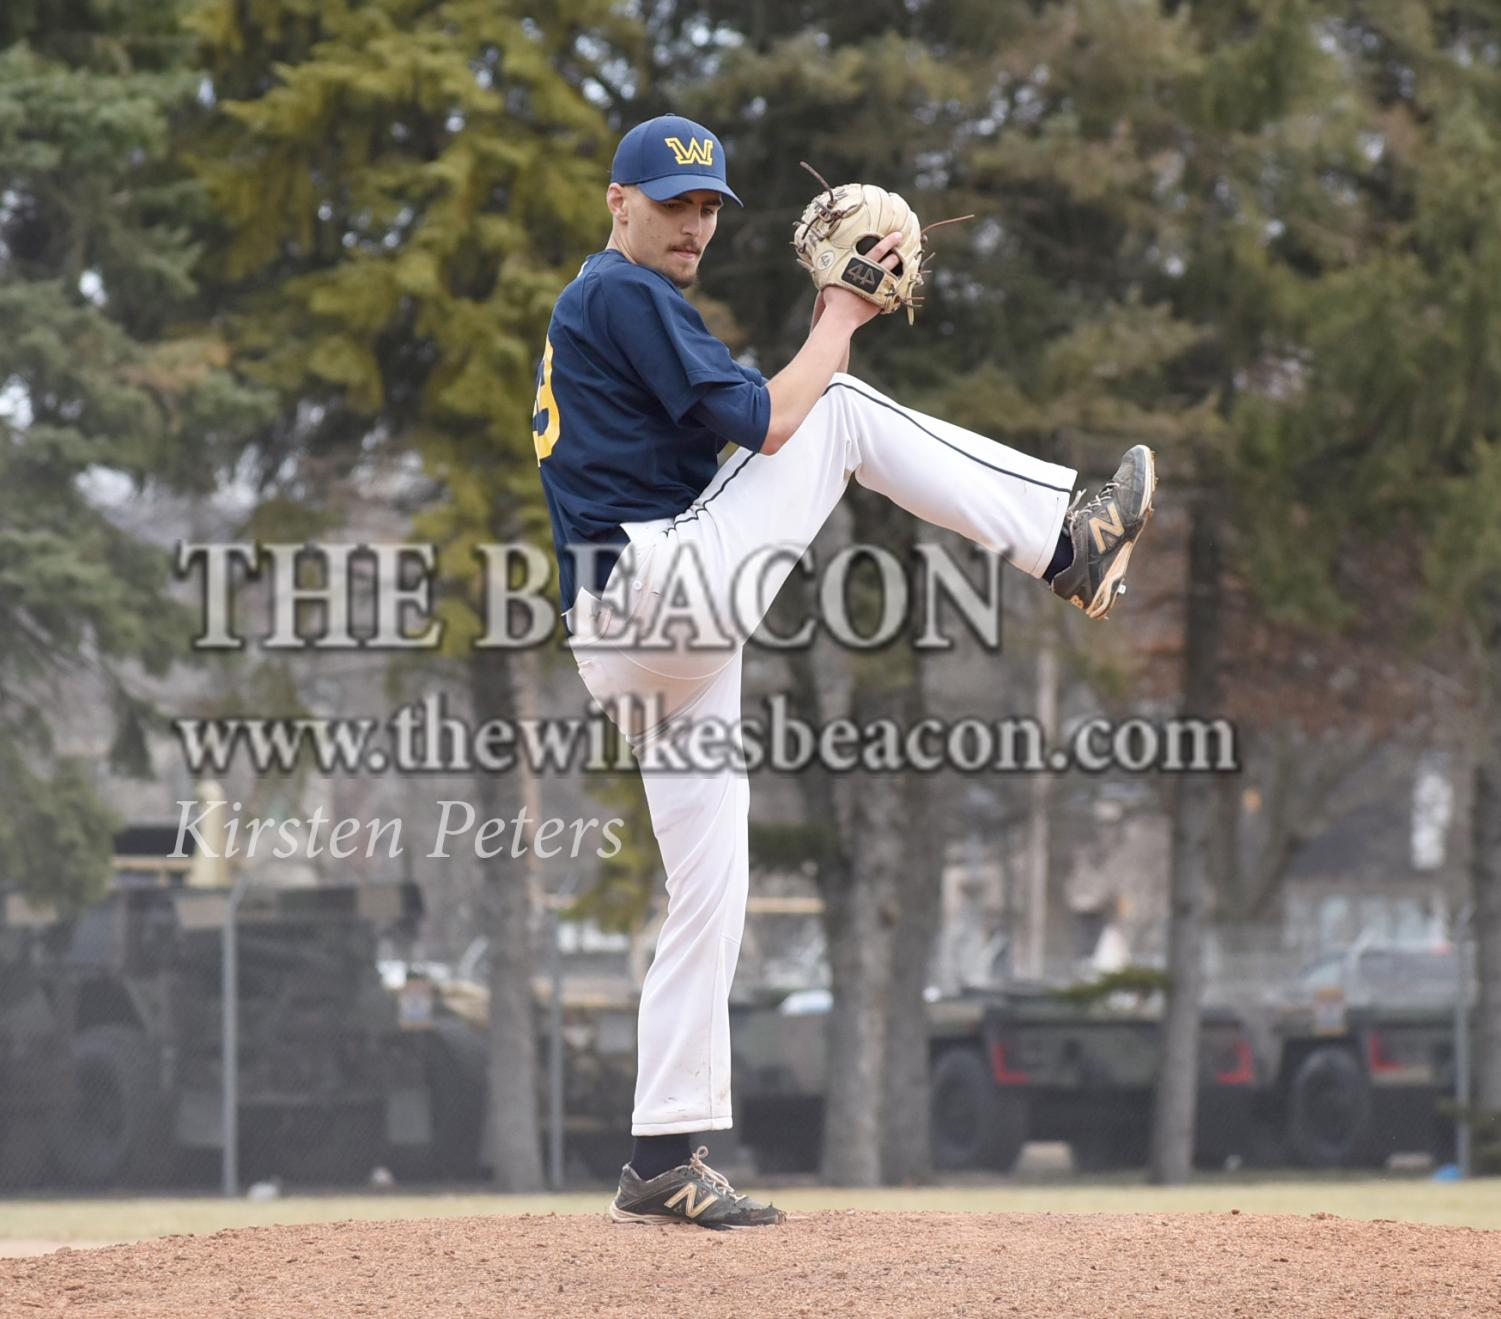 Freshman pitcher JT Hibschman secured the second victory of his young collegiate career with a 4-3 win over DeSales, following a 6-0 win over Eastern last week.